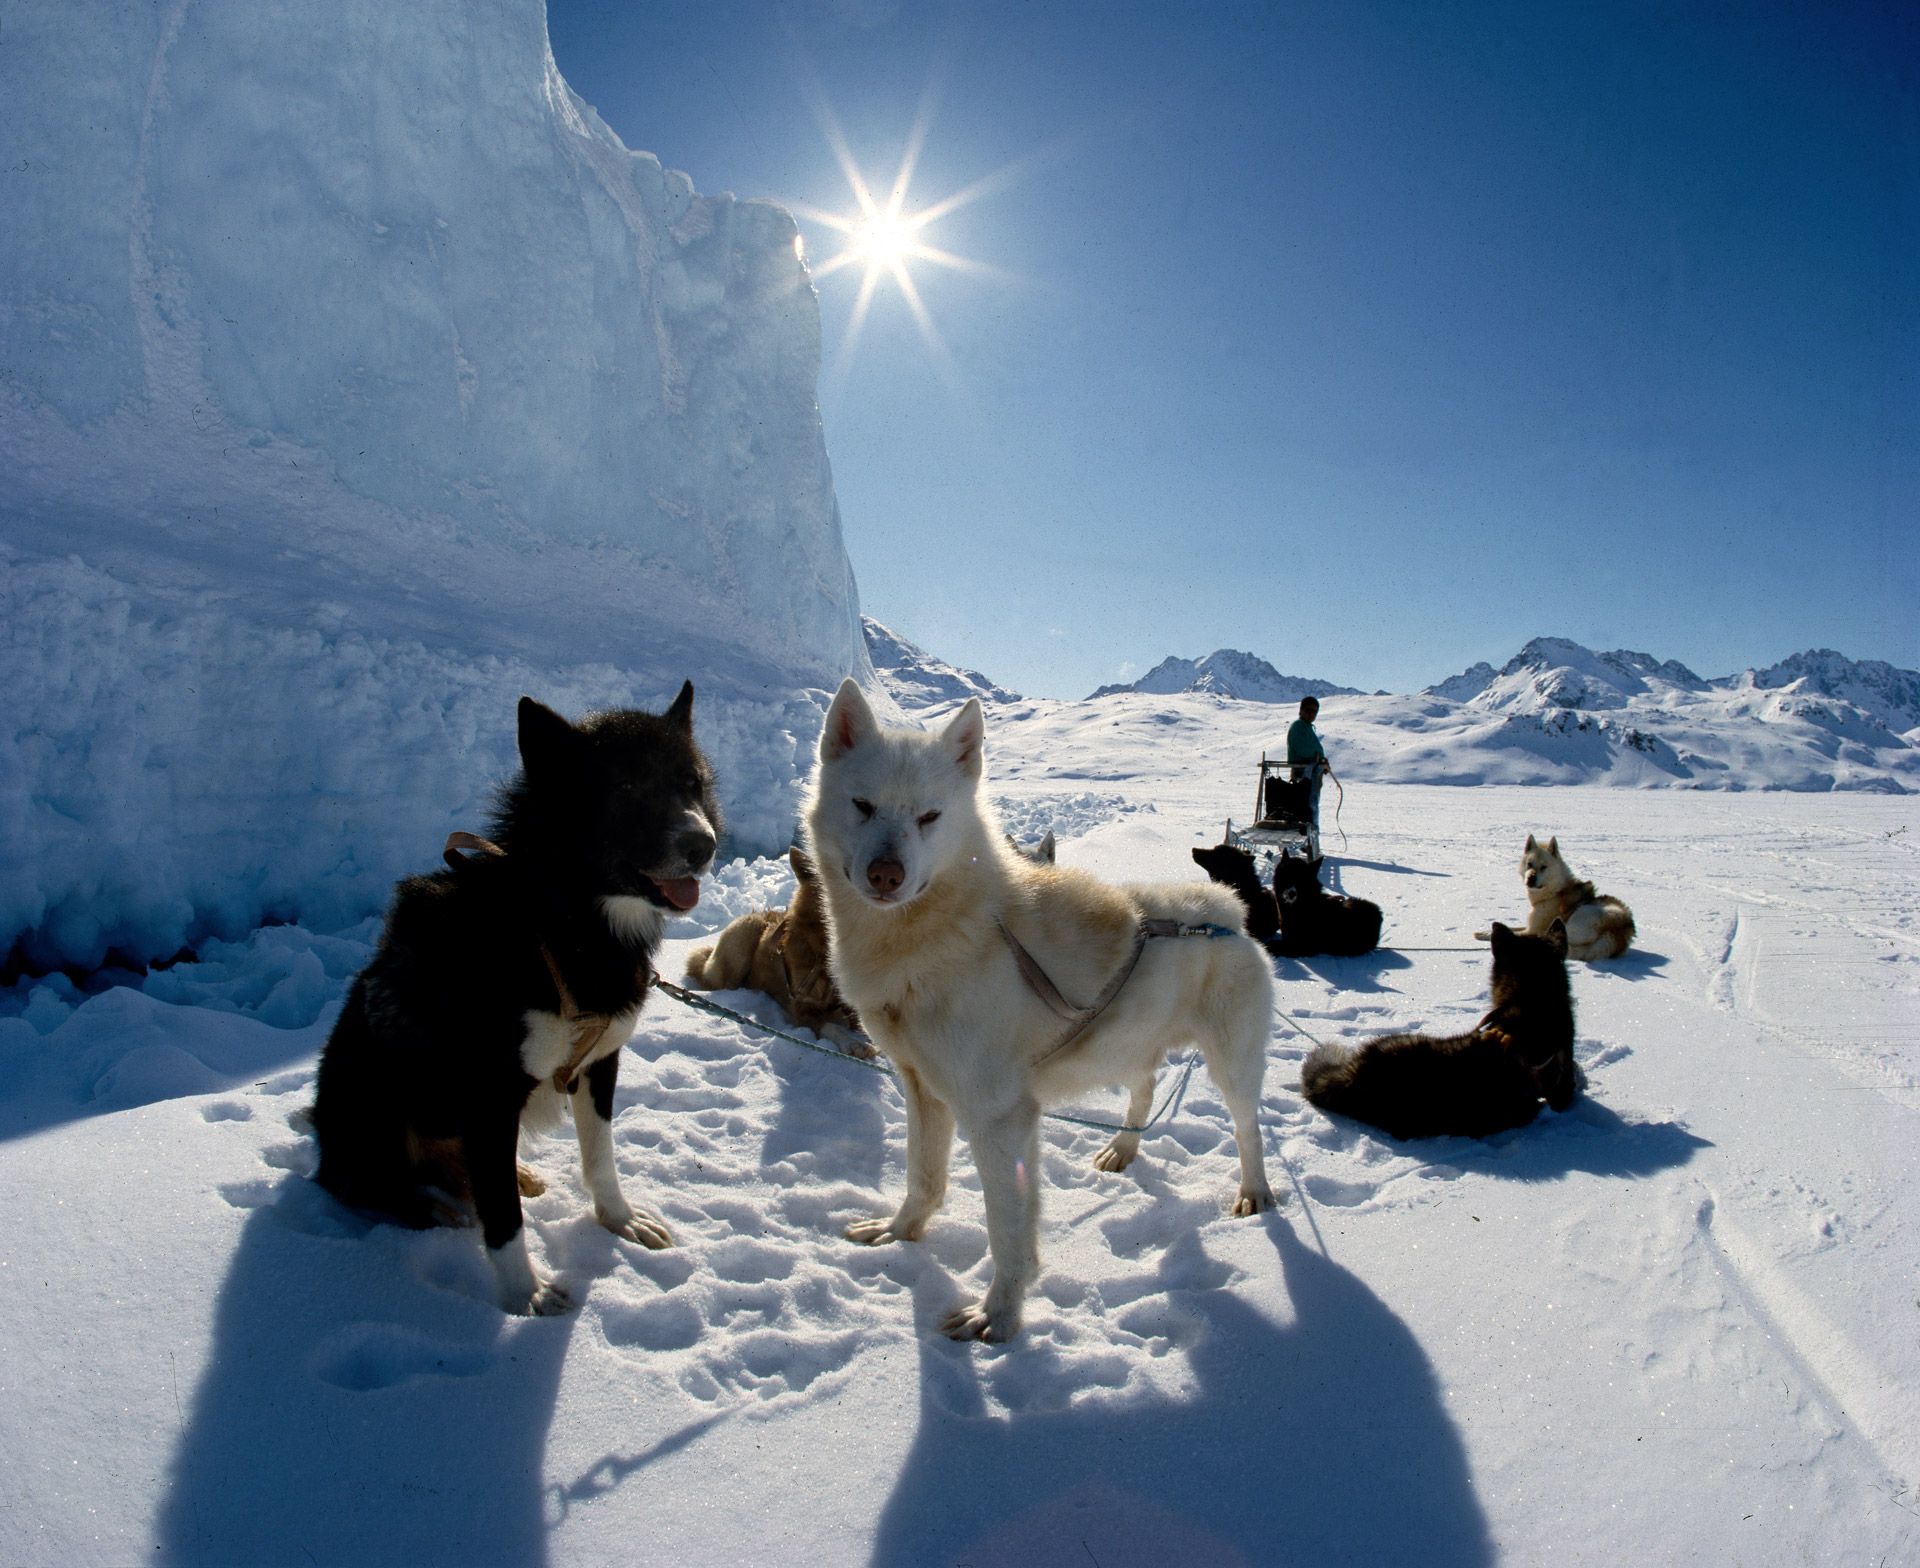 Sledge dogs in Greenland near Ammassalik taking a well deserved break